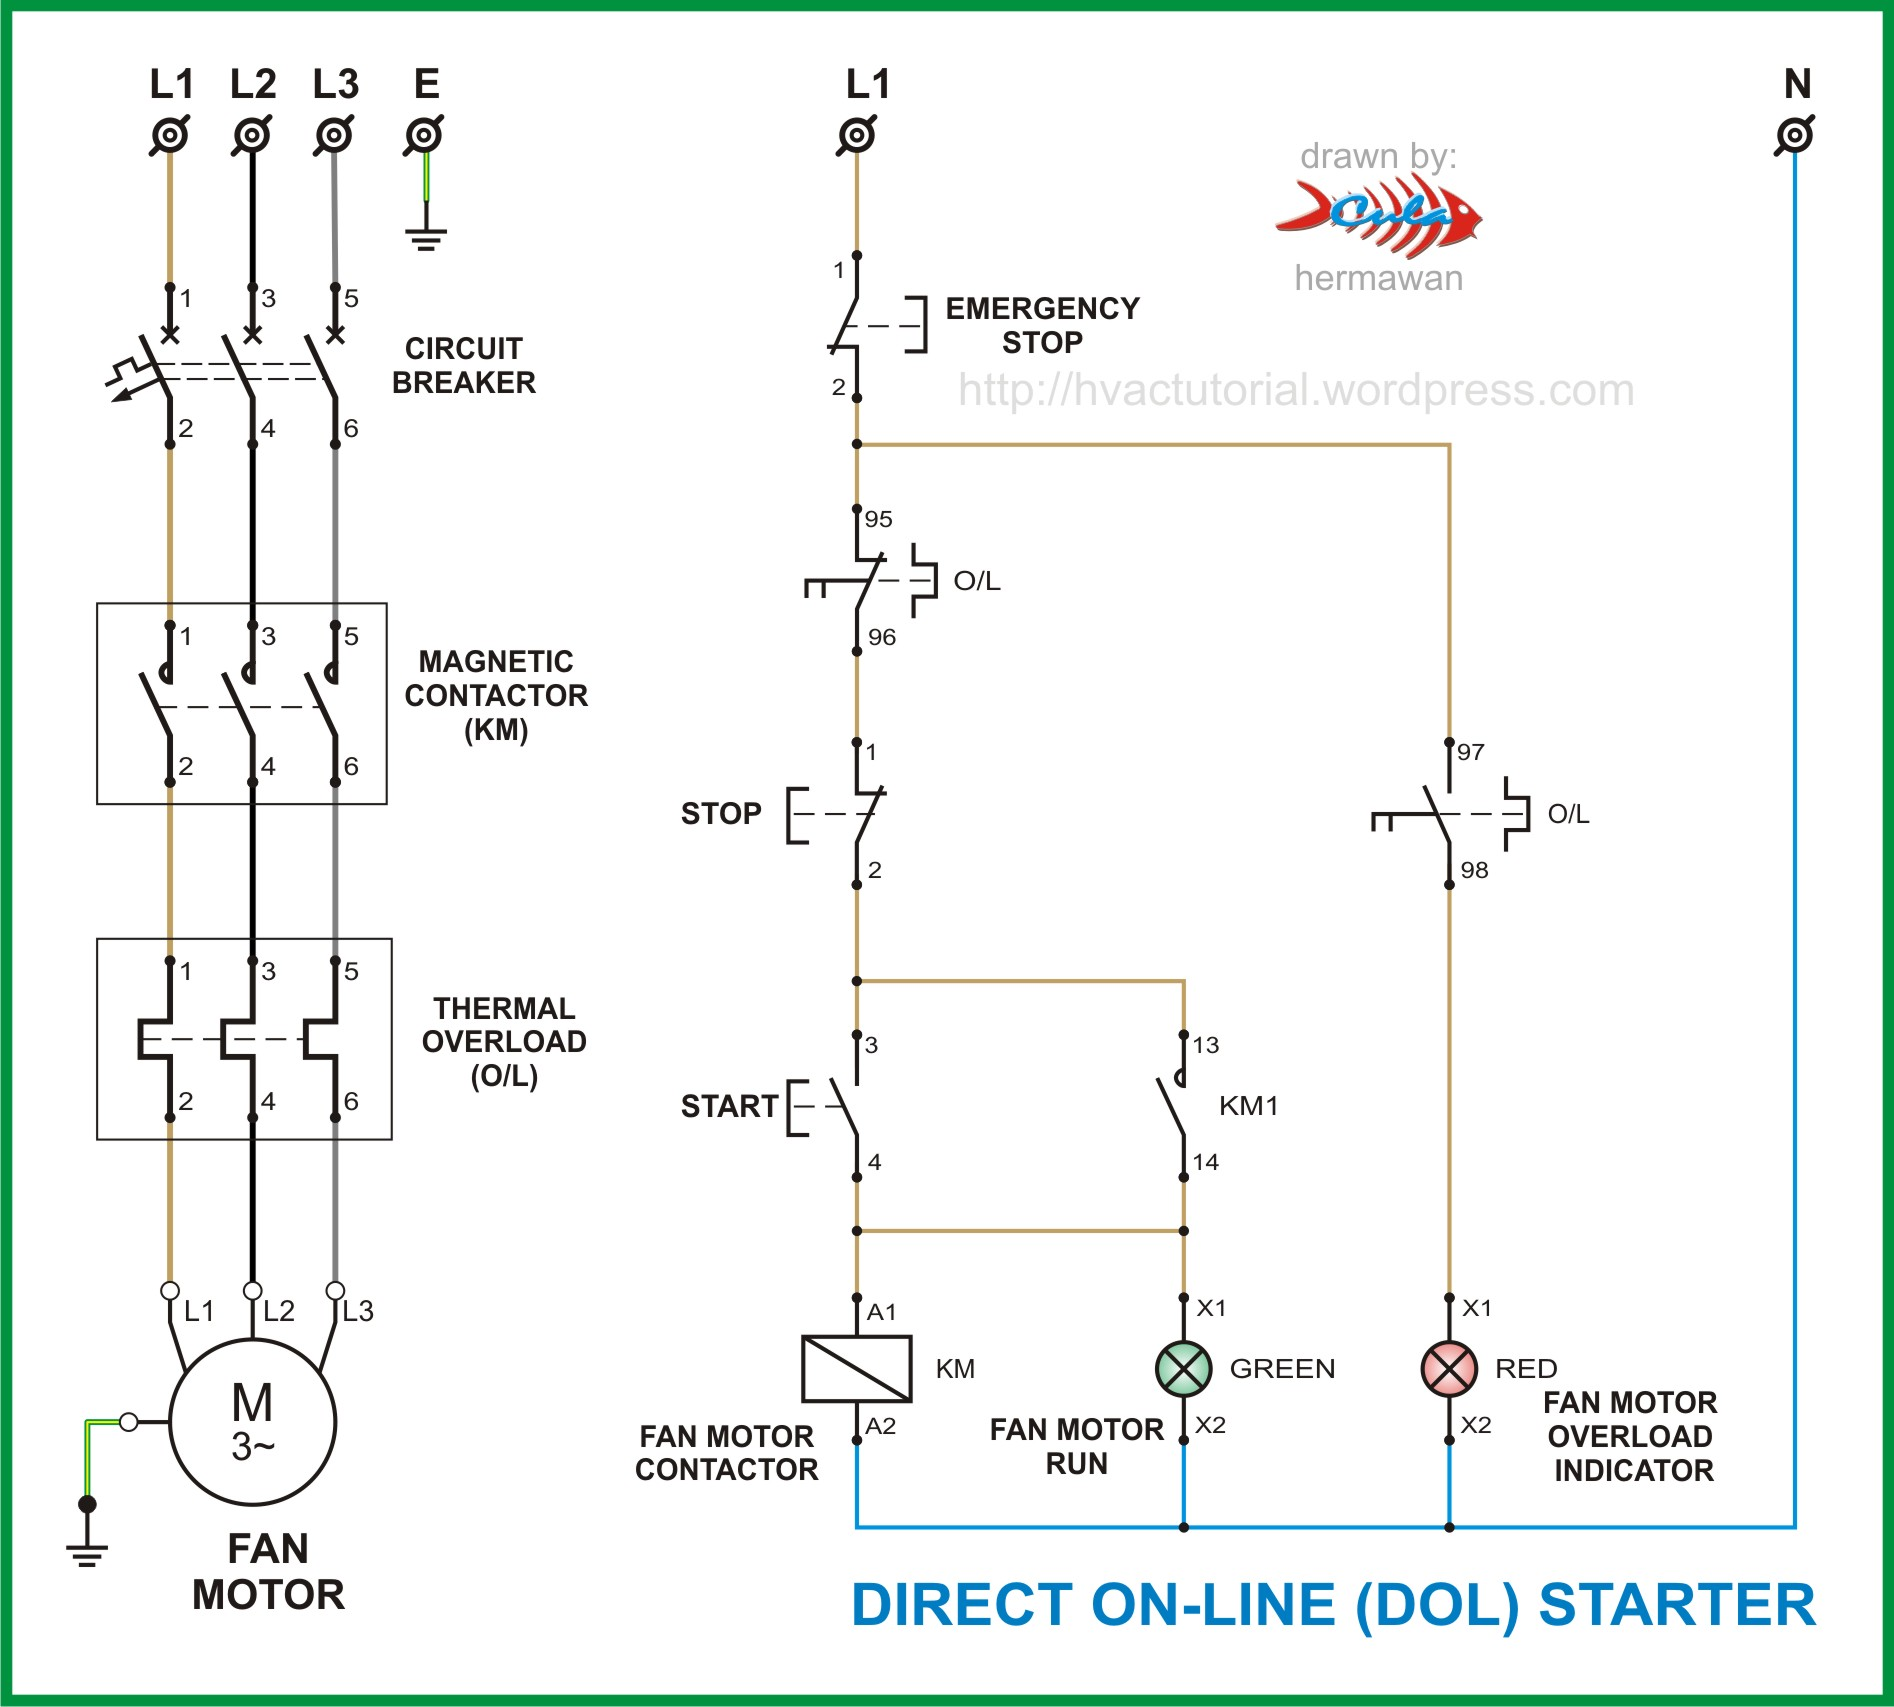 single phase reversing contactor wiring diagram radio for 2004 chevy silverado with bose system dol starter | hermawan's blog (refrigeration and air conditioning systems)